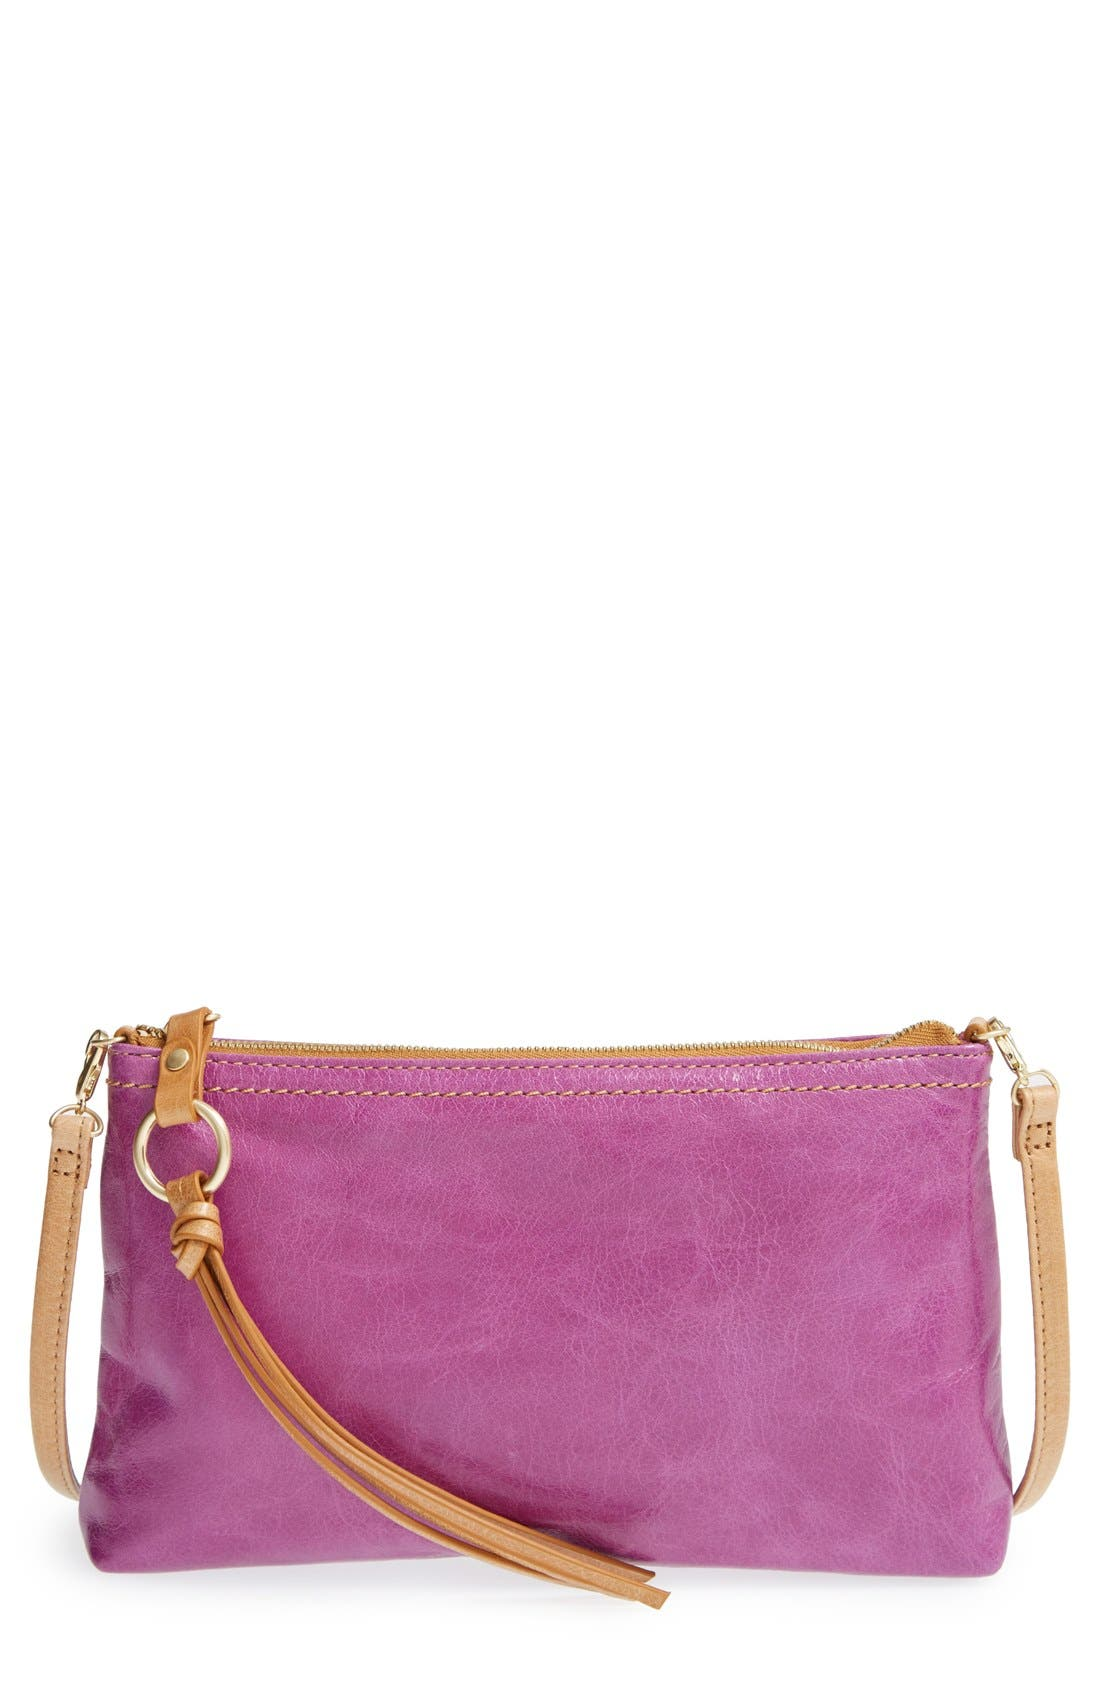 'Darcy' Leather Crossbody Bag,                             Main thumbnail 20, color,